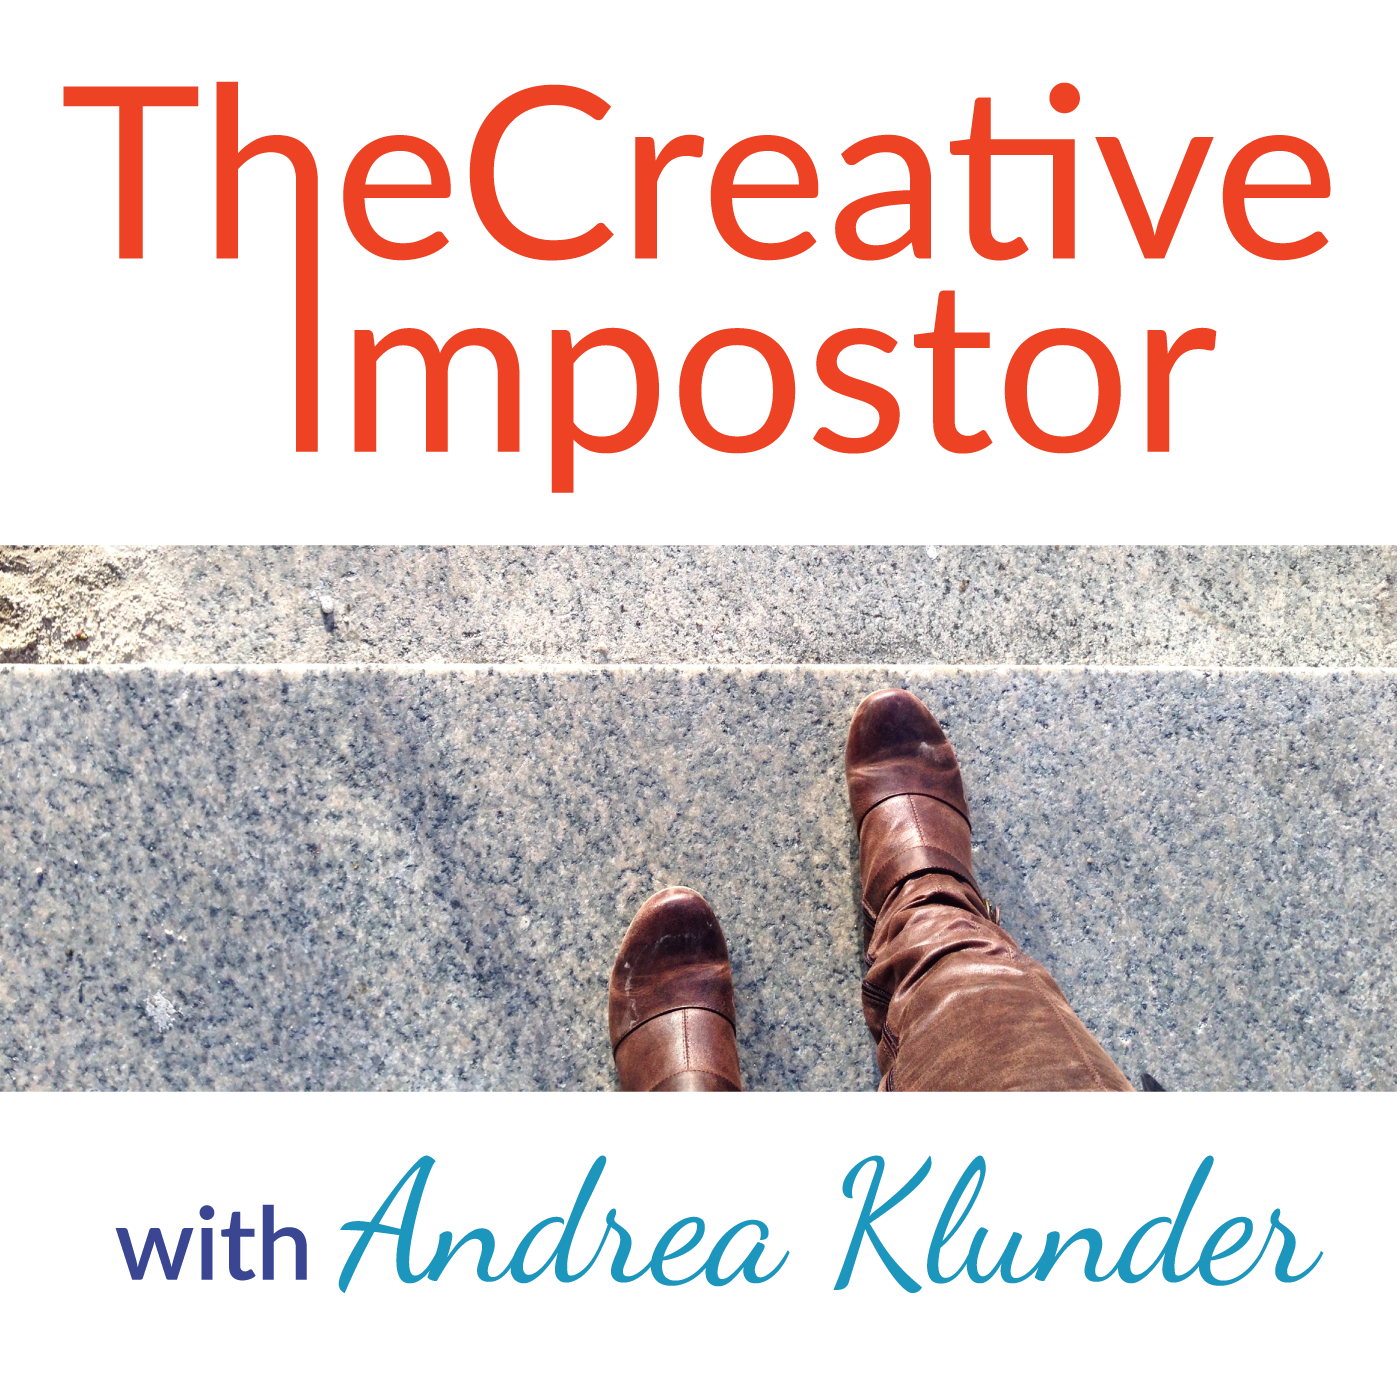 001: Impostor Syndrome, Do you have it?